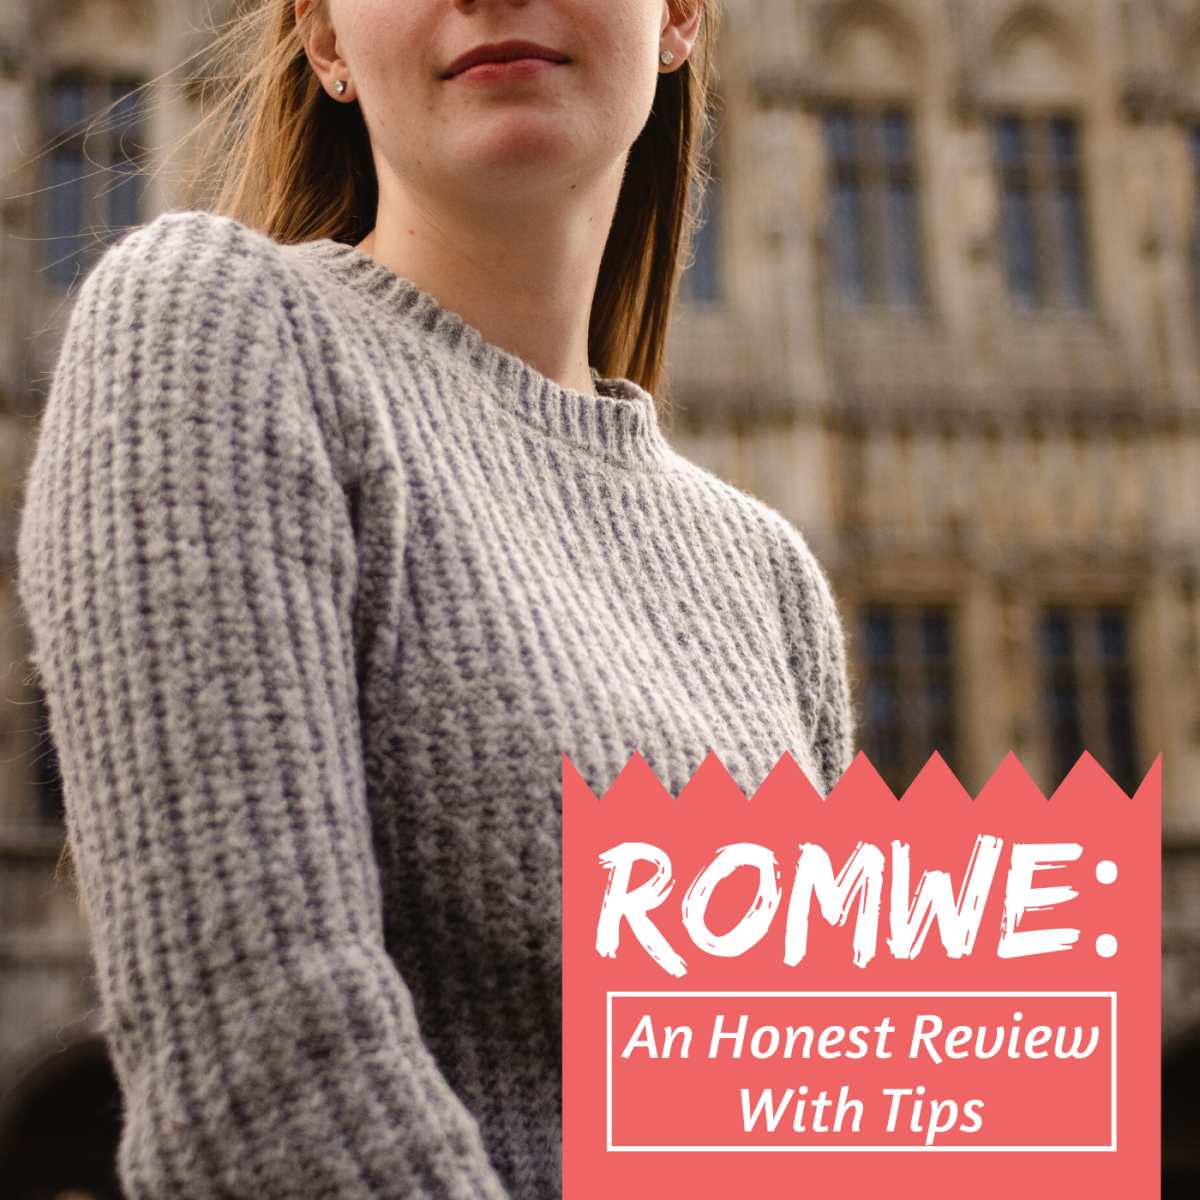 Romwe offers in-style fashions at prices that seem incredibly low. Here's what you need to know.